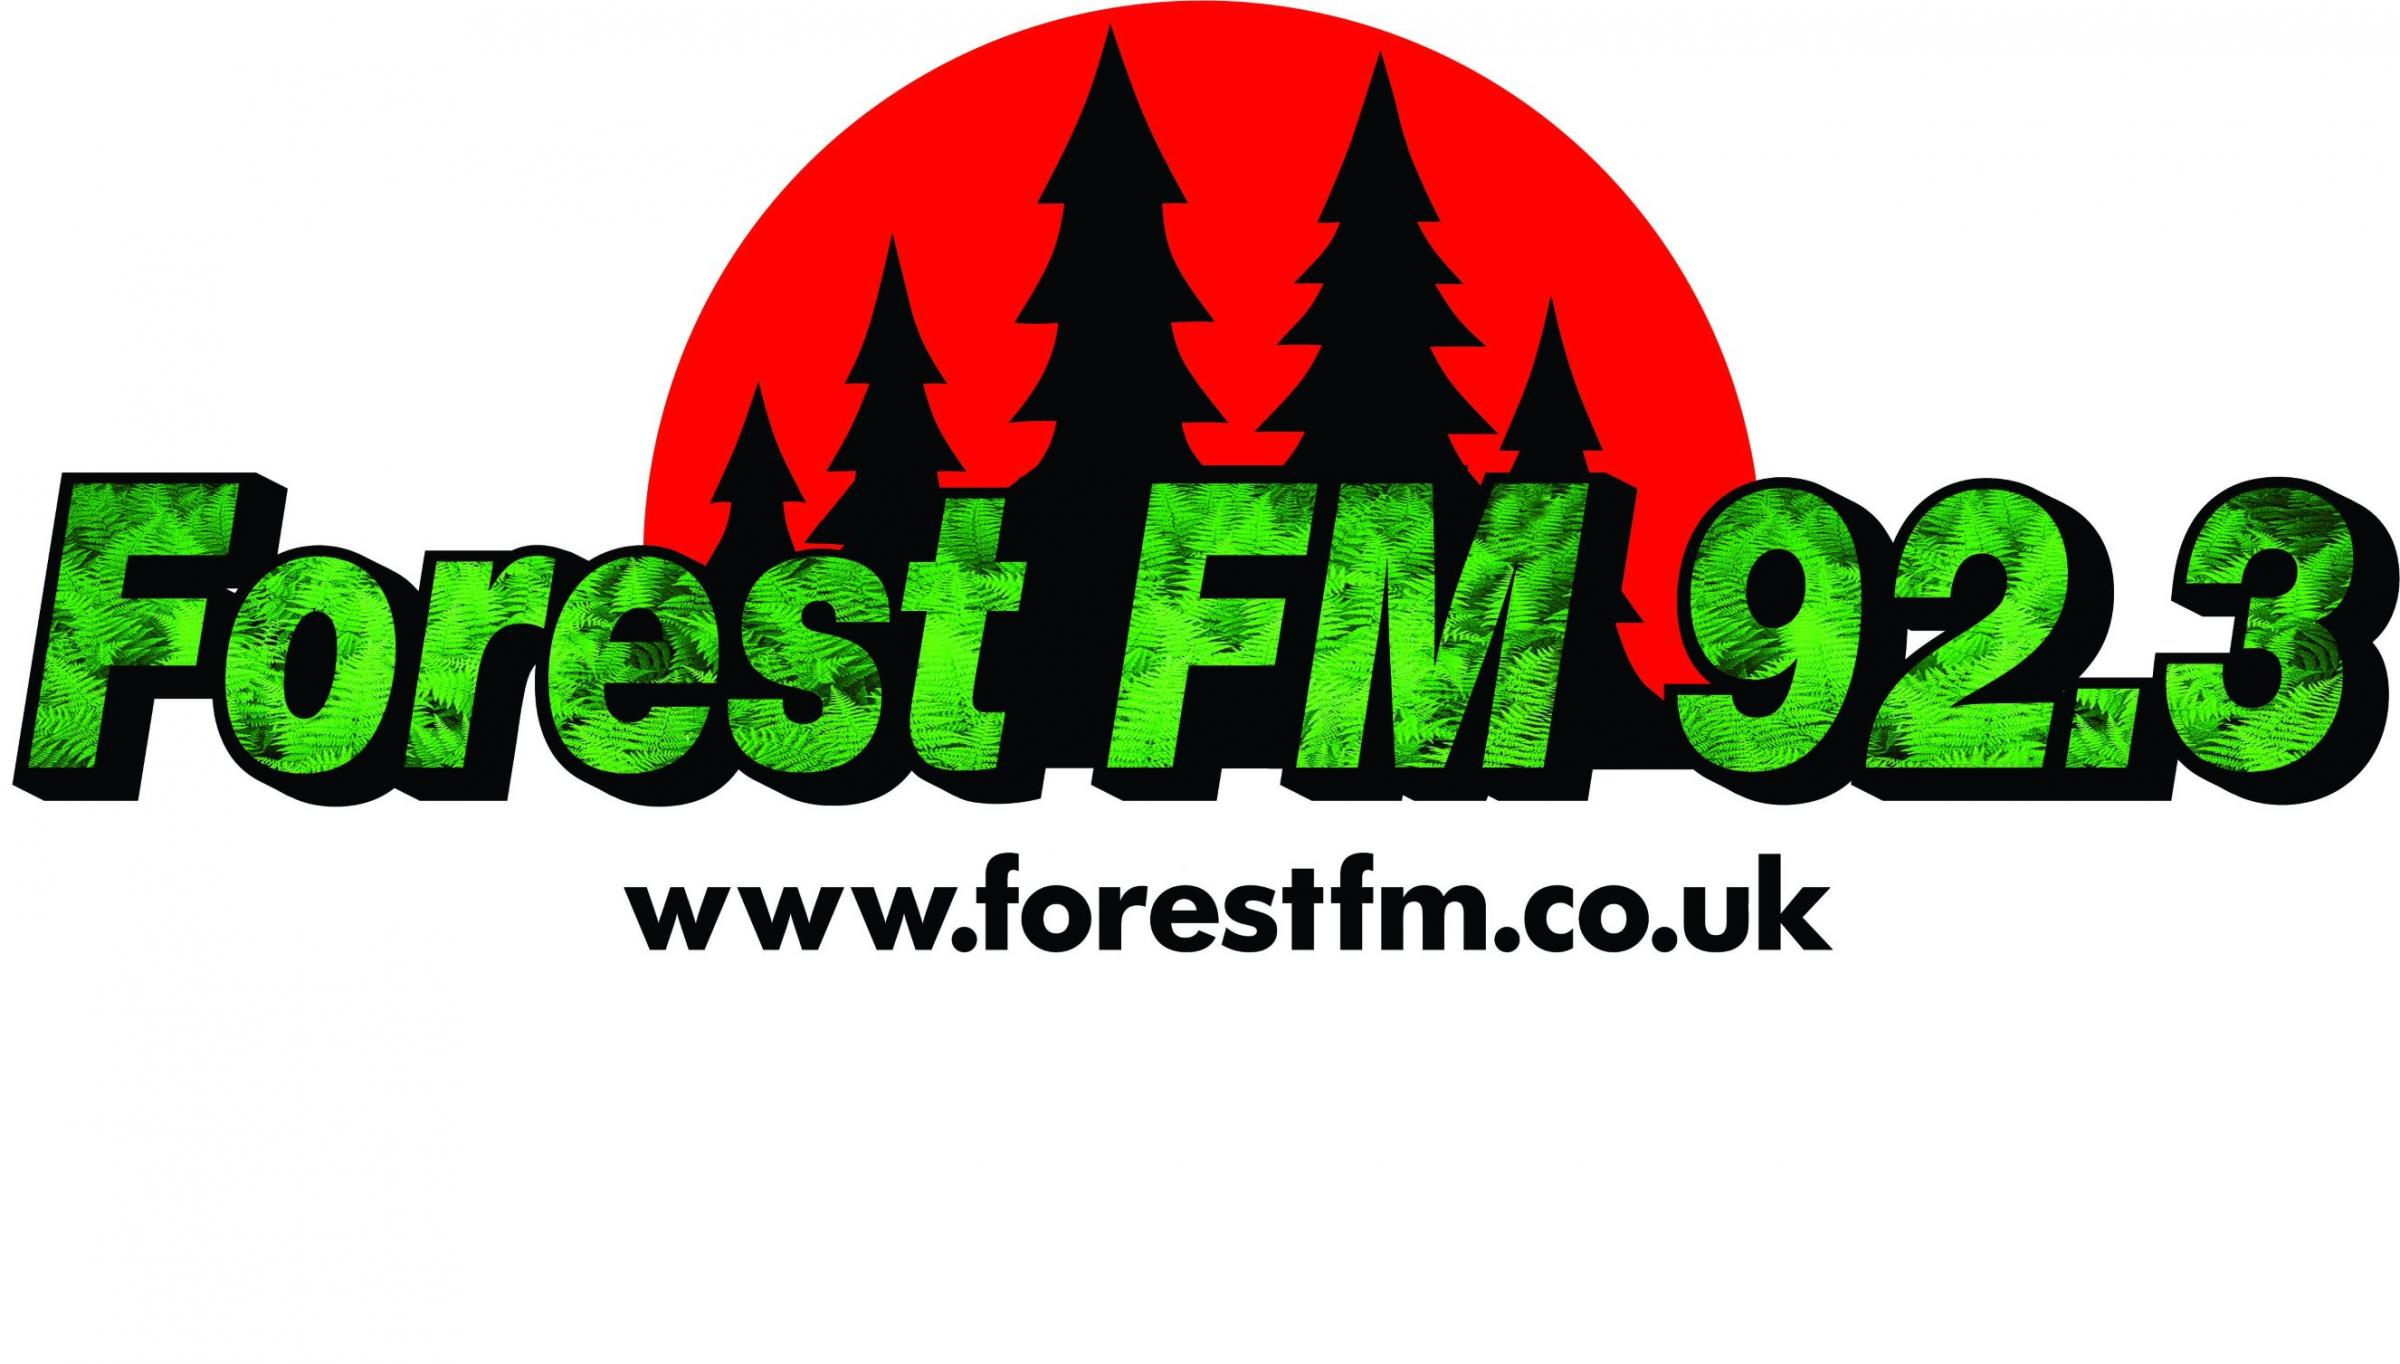 Forest FM - Exhibition of Local Radio. Jan 27th-Feb 8th